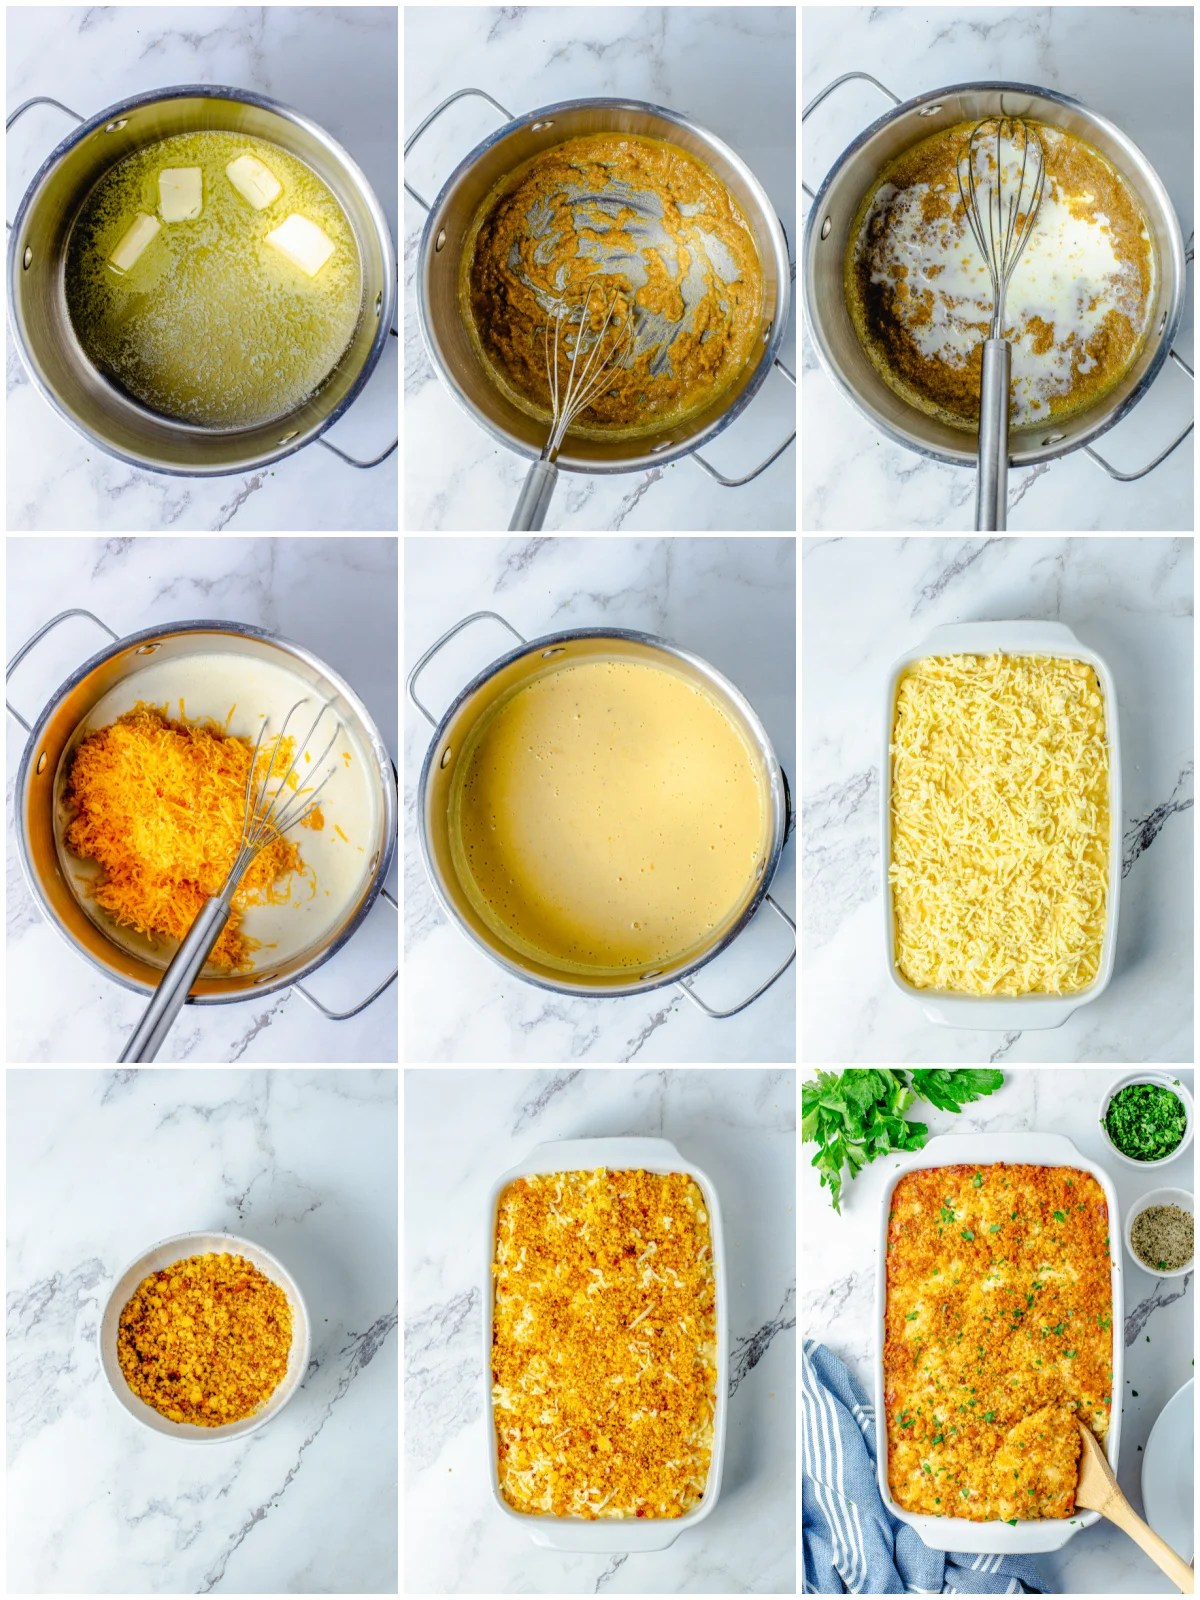 Step by step photos on how too make Baked Macaroni and Cheese with Cornbread Crust.